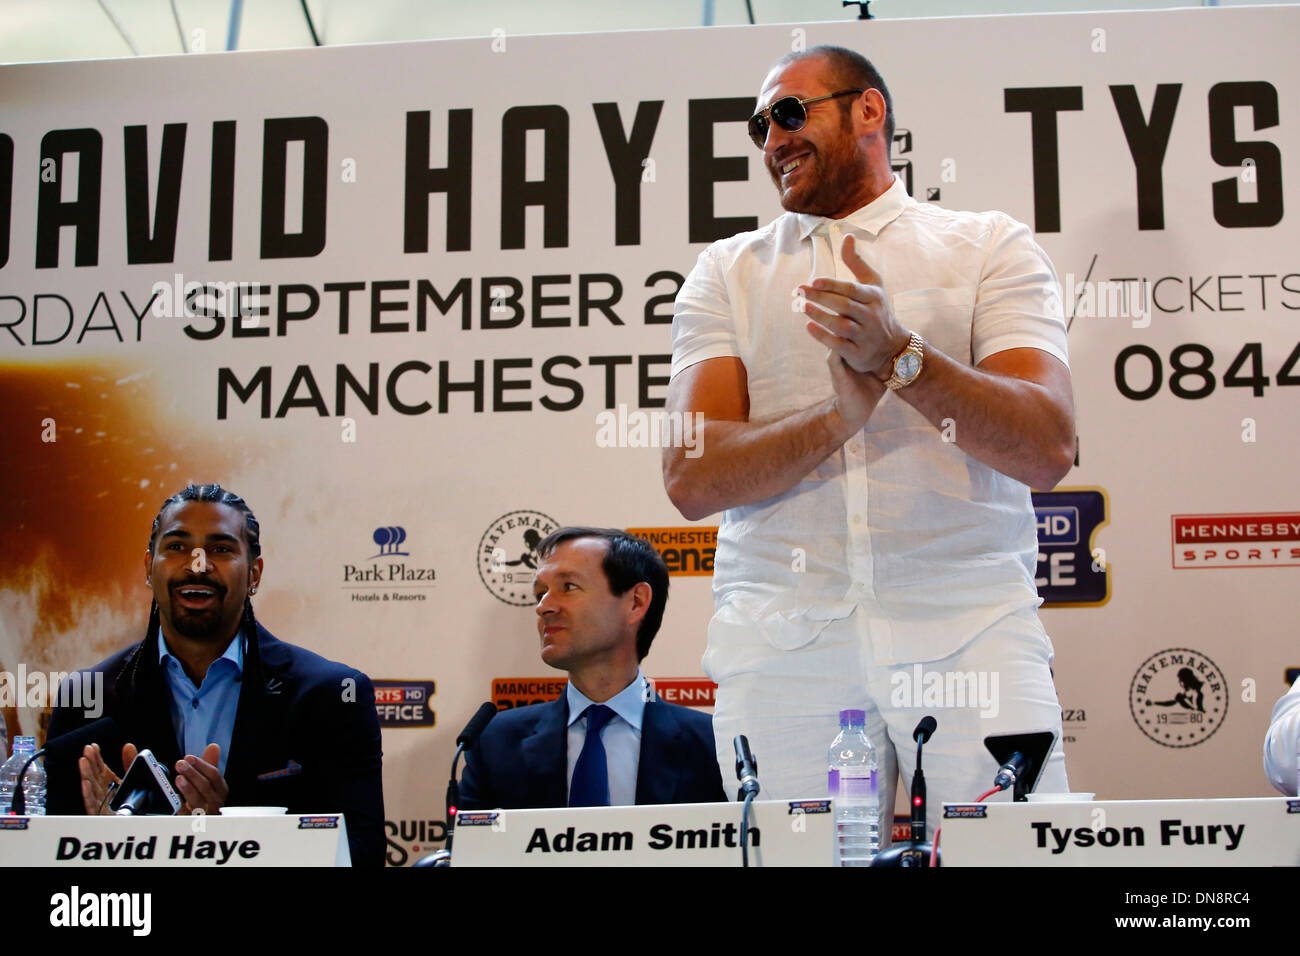 British heavyweight boxer Tyson Fury attends a press conference to announce his upcoming title fight against David Haye - Stock Image